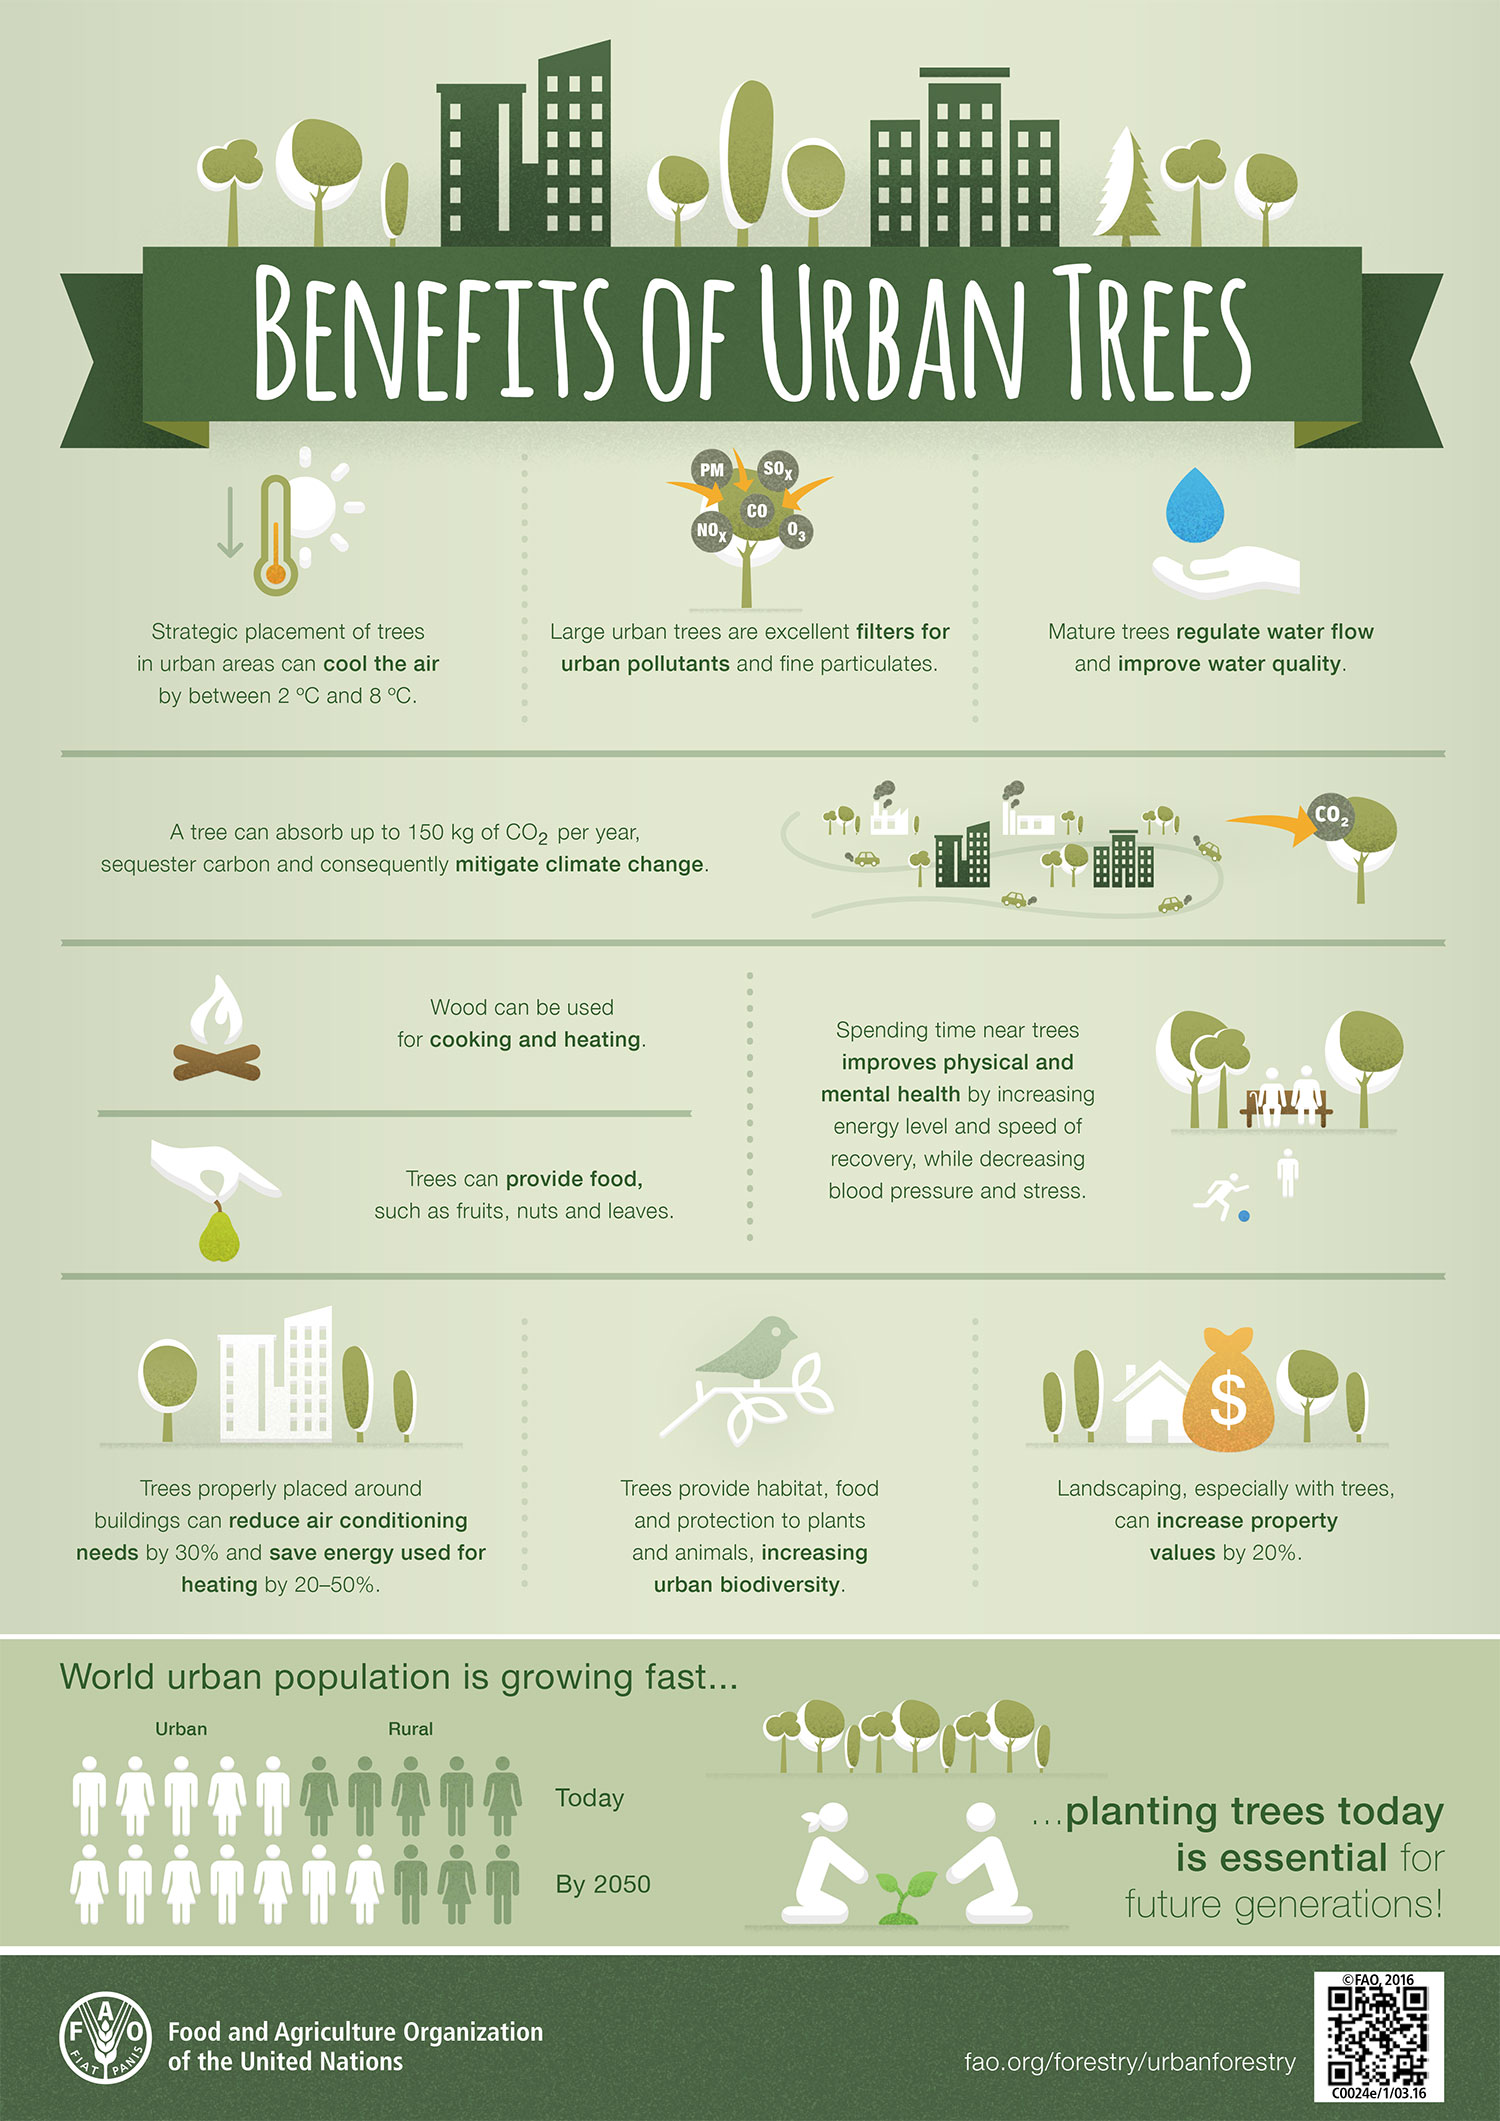 An infographic depicting the benefits of urban trees